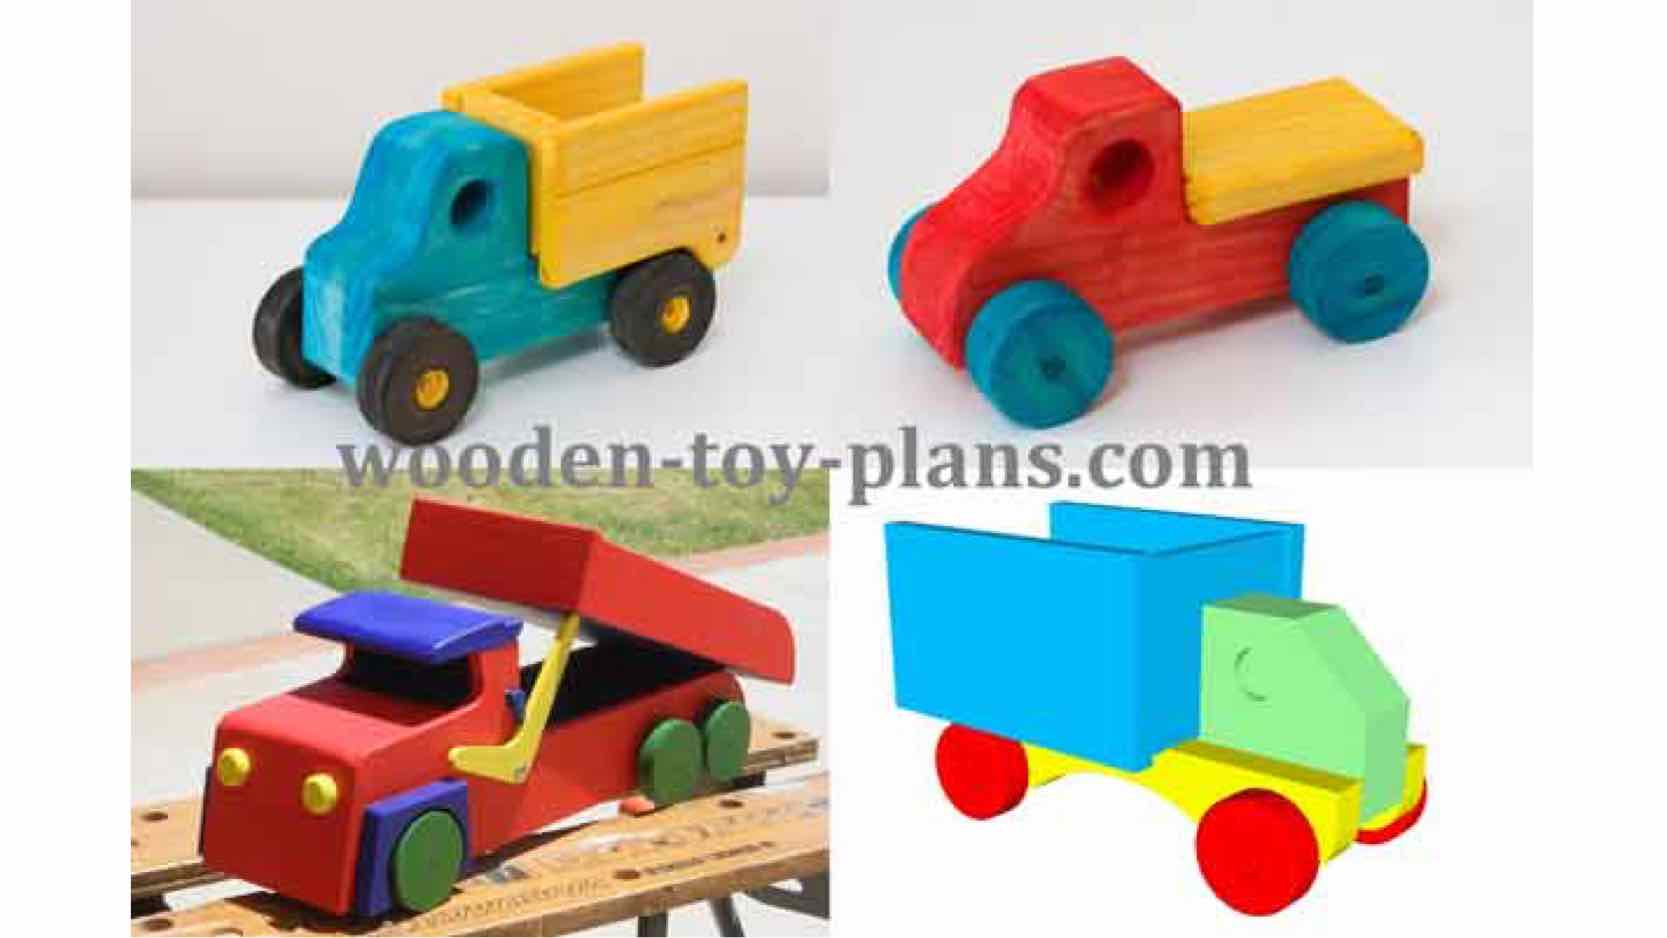 Free plans to build wooden toy trucks.